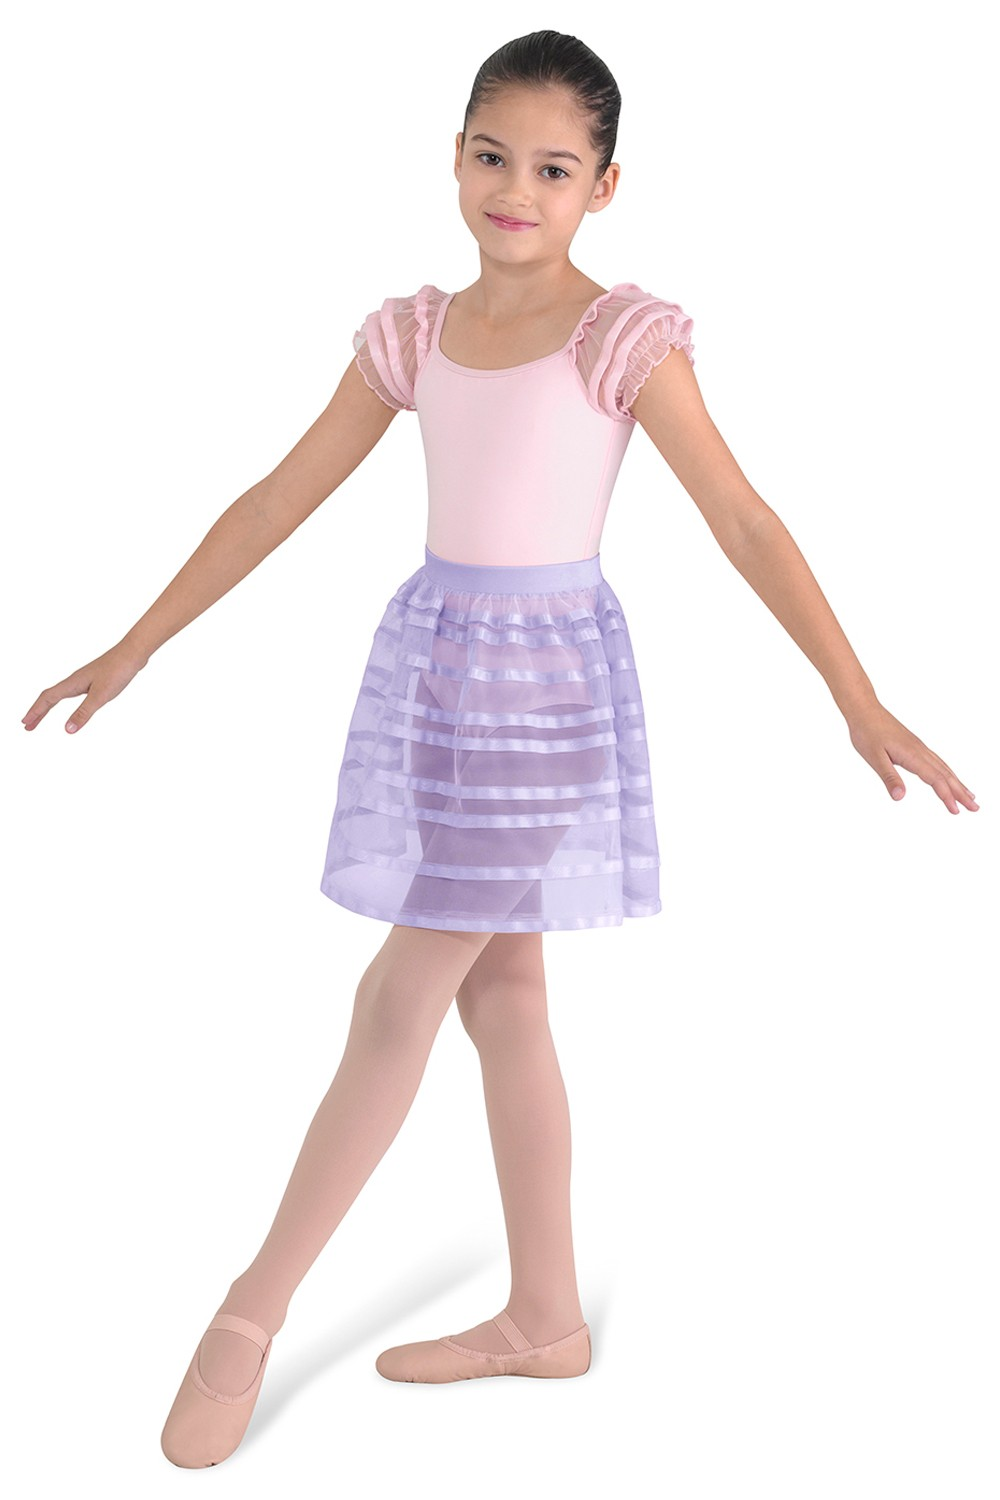 Knee Length Skirt Children's Dance Skirts